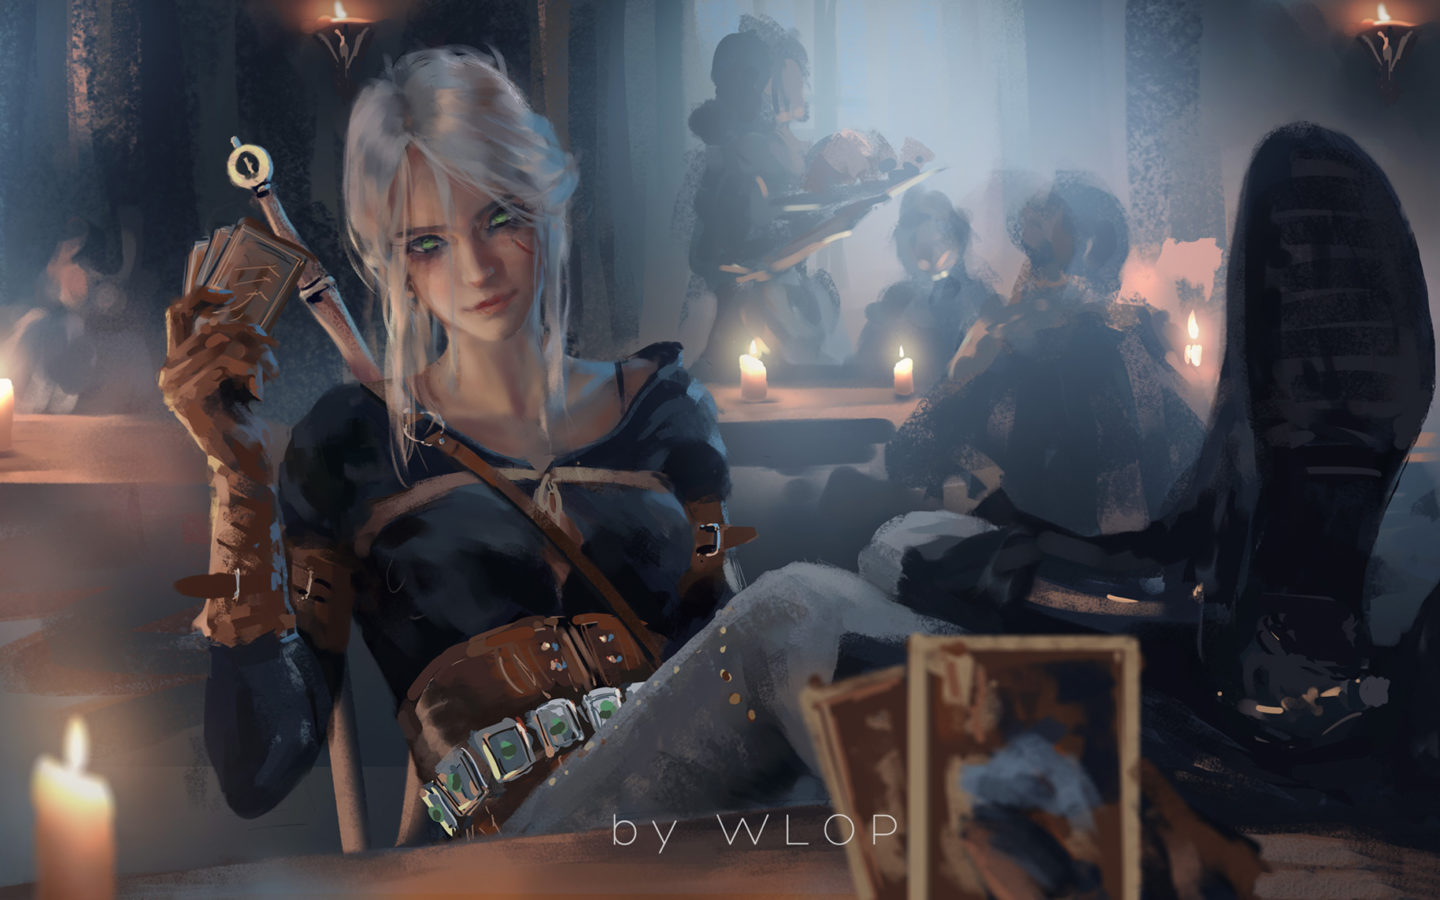 Download Wallpaper Iphone 5s Ciri Witcher 3 Fanart Hd Games 4k Wallpapers Hd Wallpapers